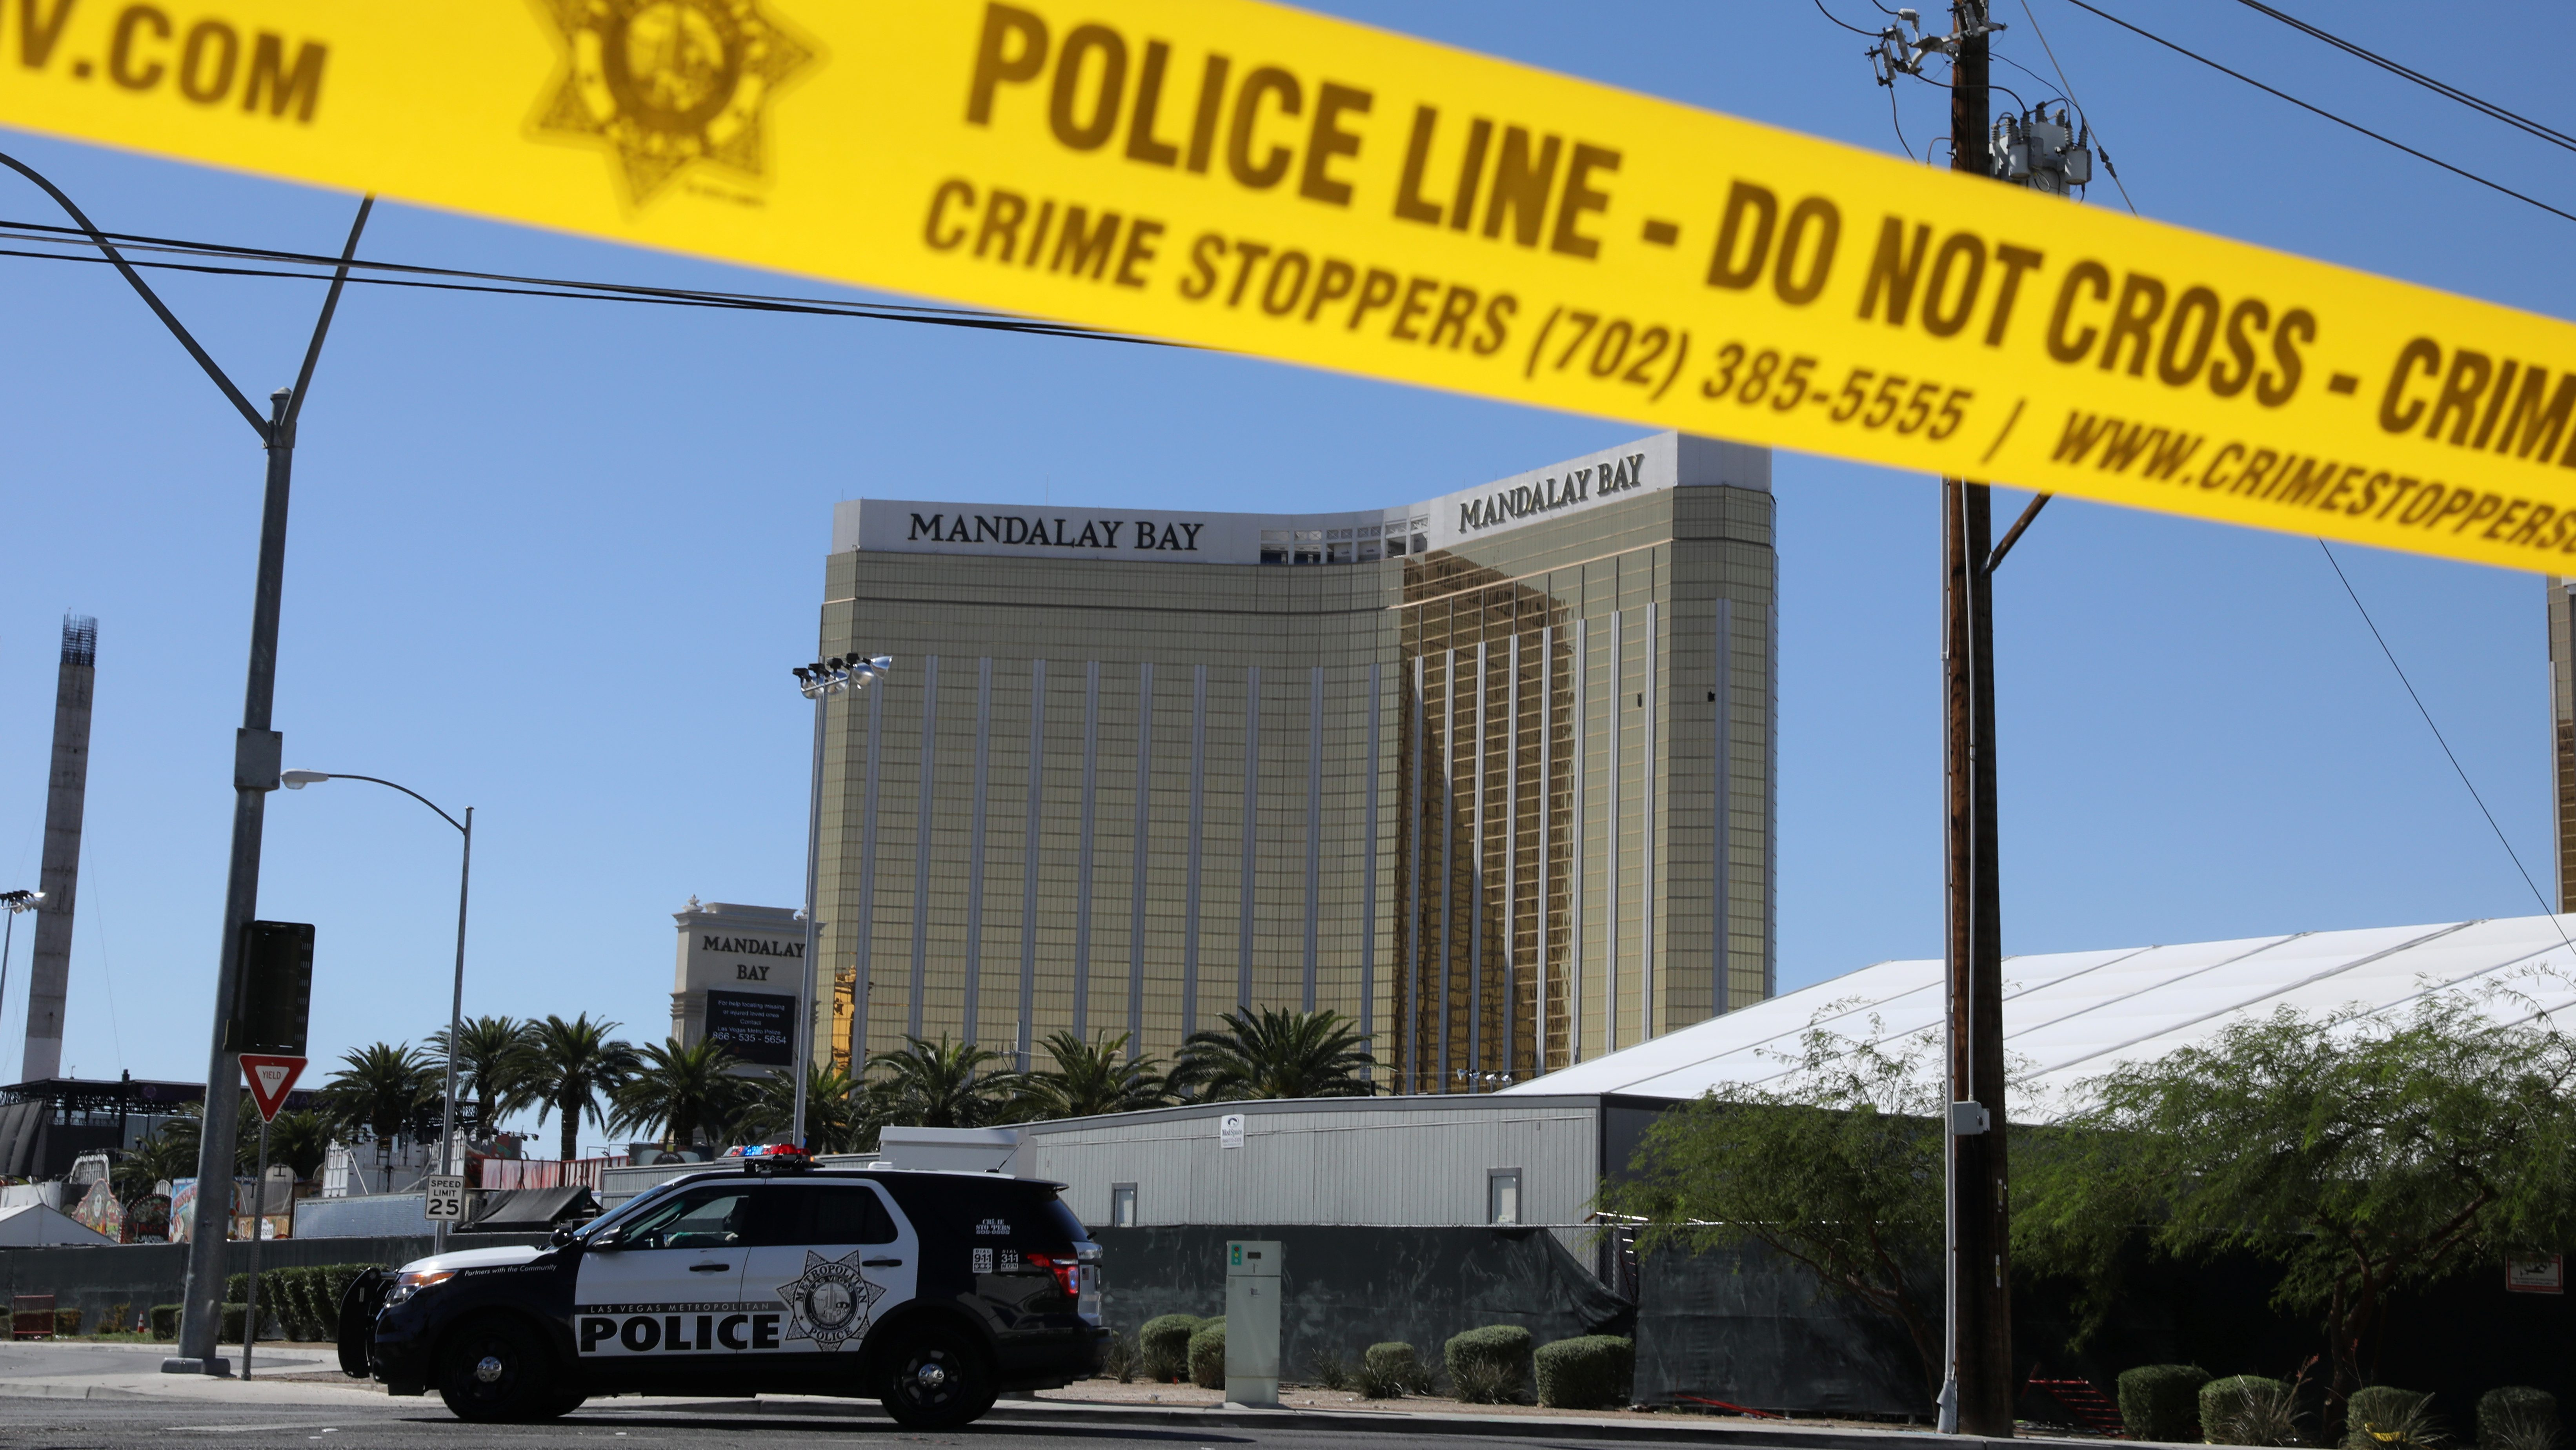 The site of the Route 91 music festival mass shooting is seen outside the Mandalay Bay Resort and Casino in Las Vegas, Nevada, U.S. October 2, 2017. REUTERS/Lucy Nicholson - RC1DF77E3010